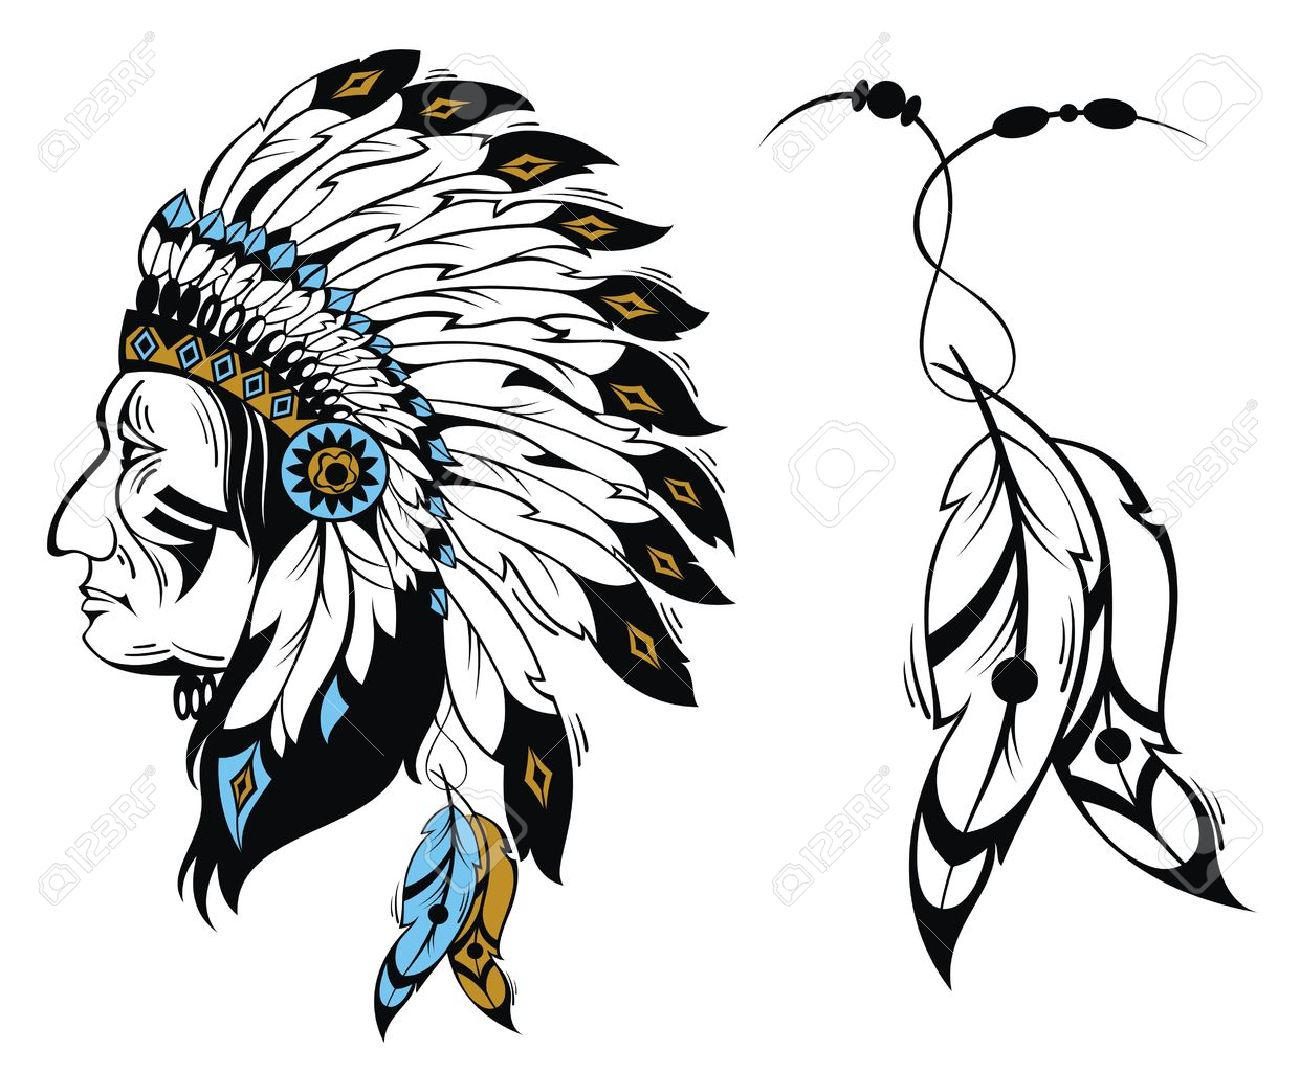 hight resolution of north american indian chief vector illustration stock vector 51898919